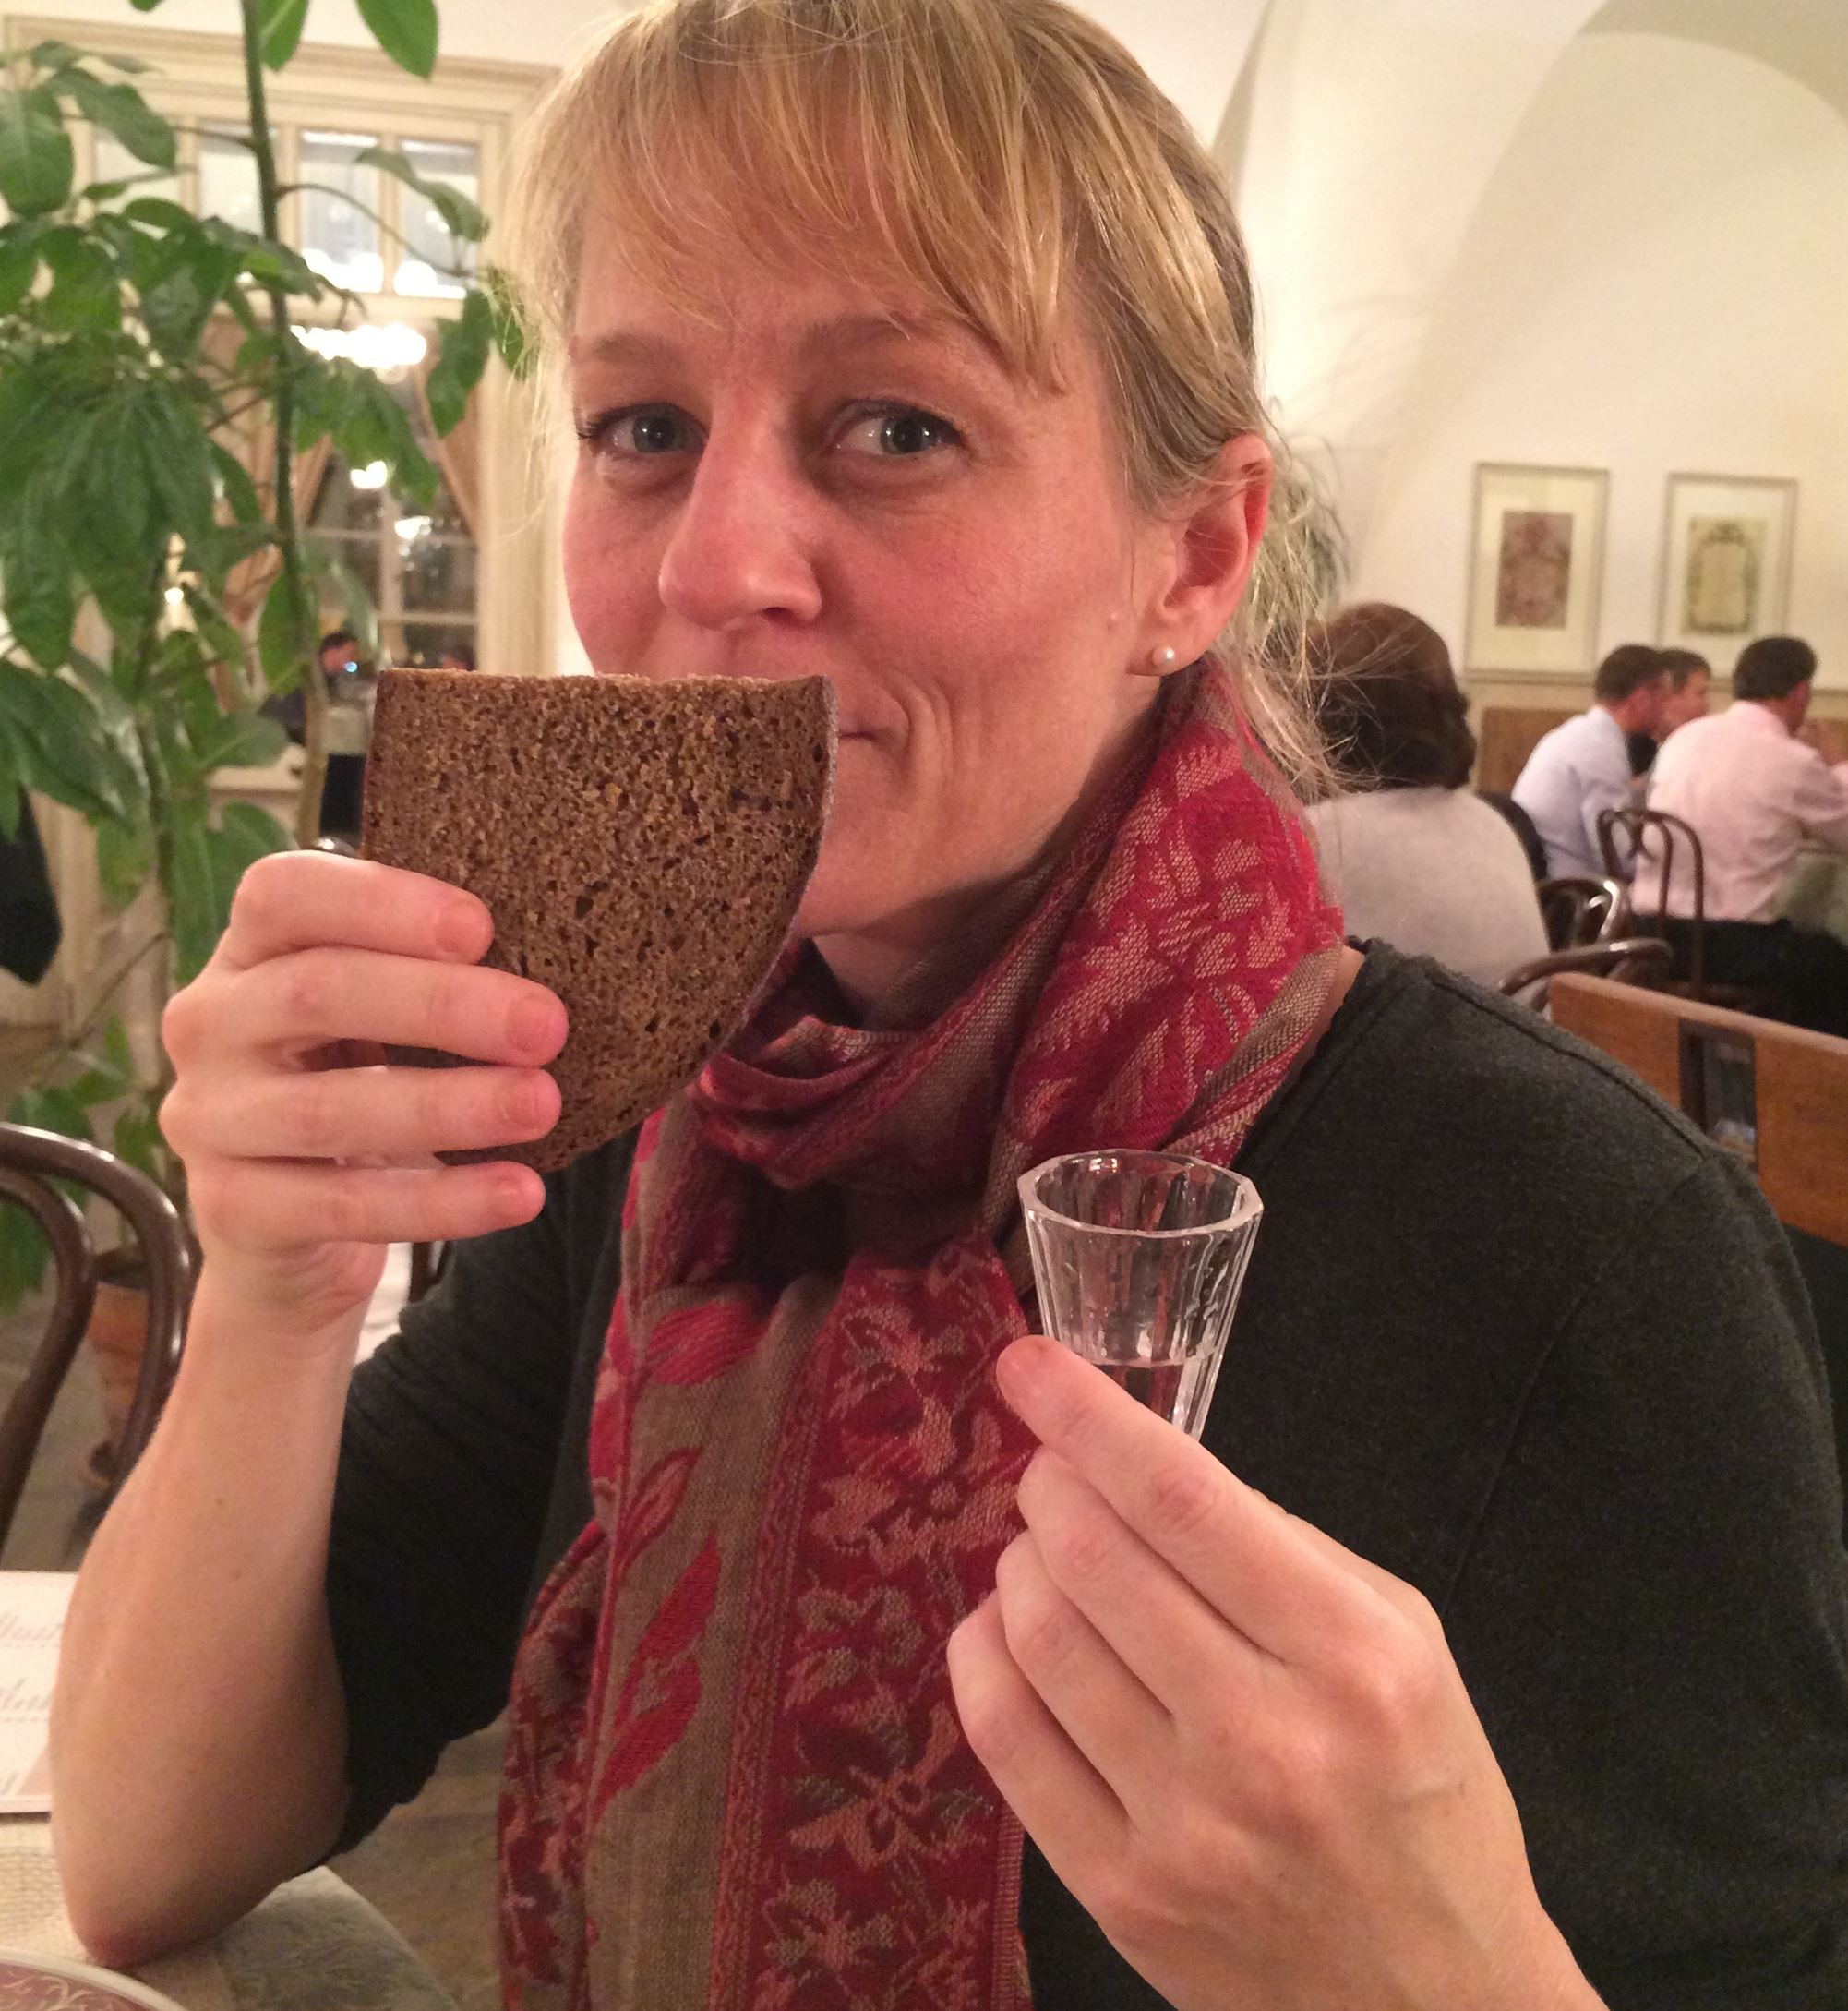 20131112horussiafood0084.jpg Jenny Eskey tests Russian advice: Sniffing black bread clears your head for more vodka.